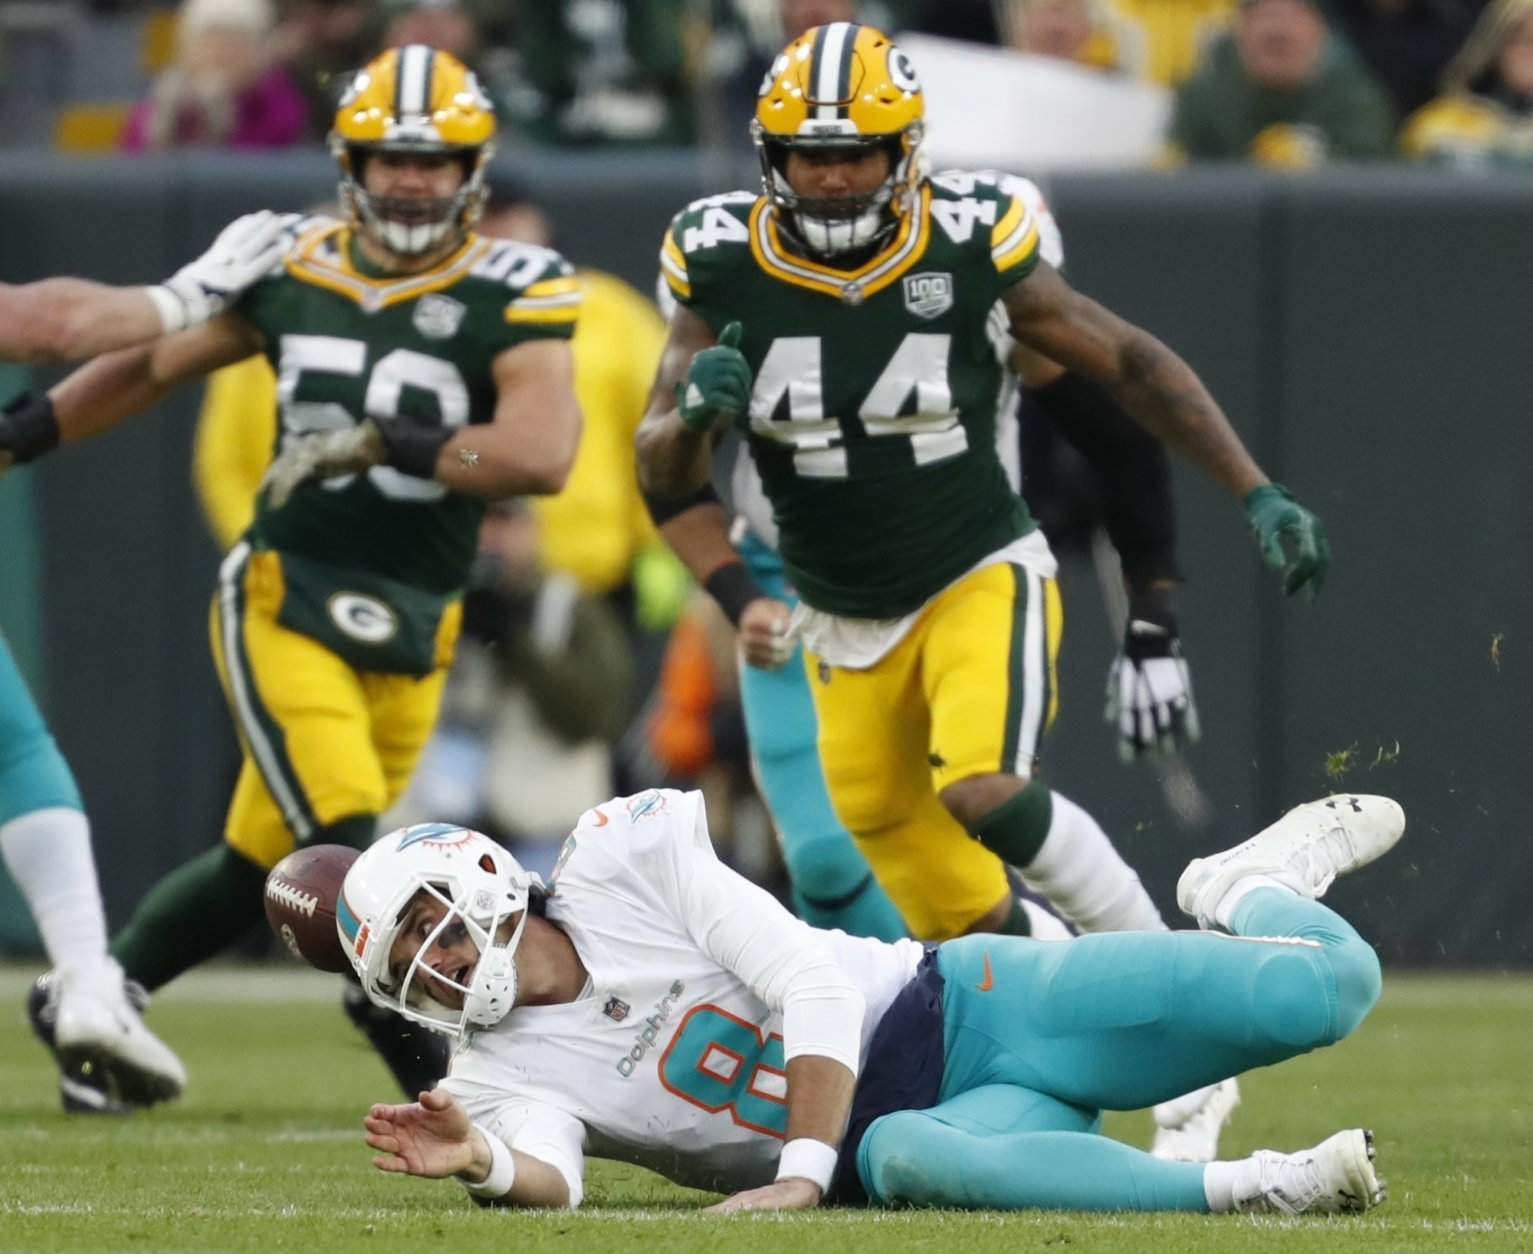 Miami Dolphins quarterback Brock Osweiler fumbles the ball during the first half of an NFL football game against the Green Bay Packers Sunday, Nov. 11, 2018, in Green Bay, Wis. (AP Photo/Matt Ludtke)